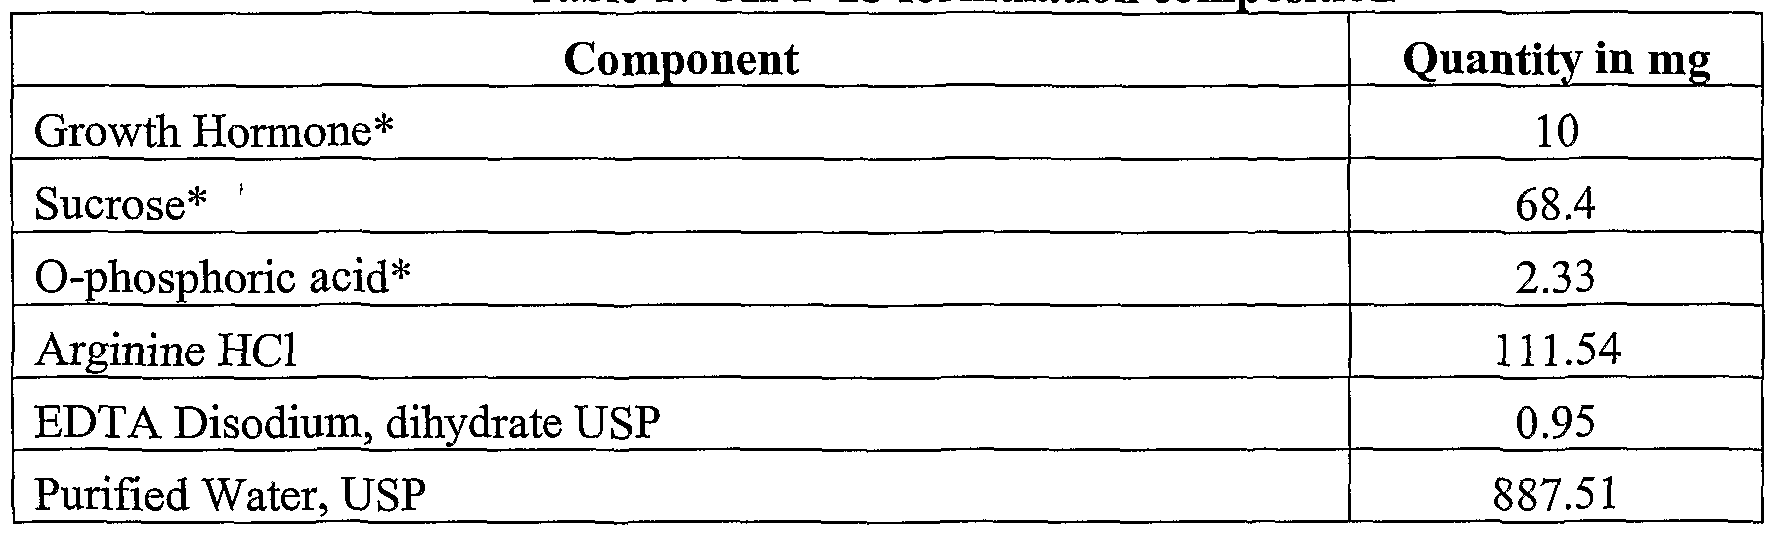 WO2005004895A2 - Compositions and methods for enhanced